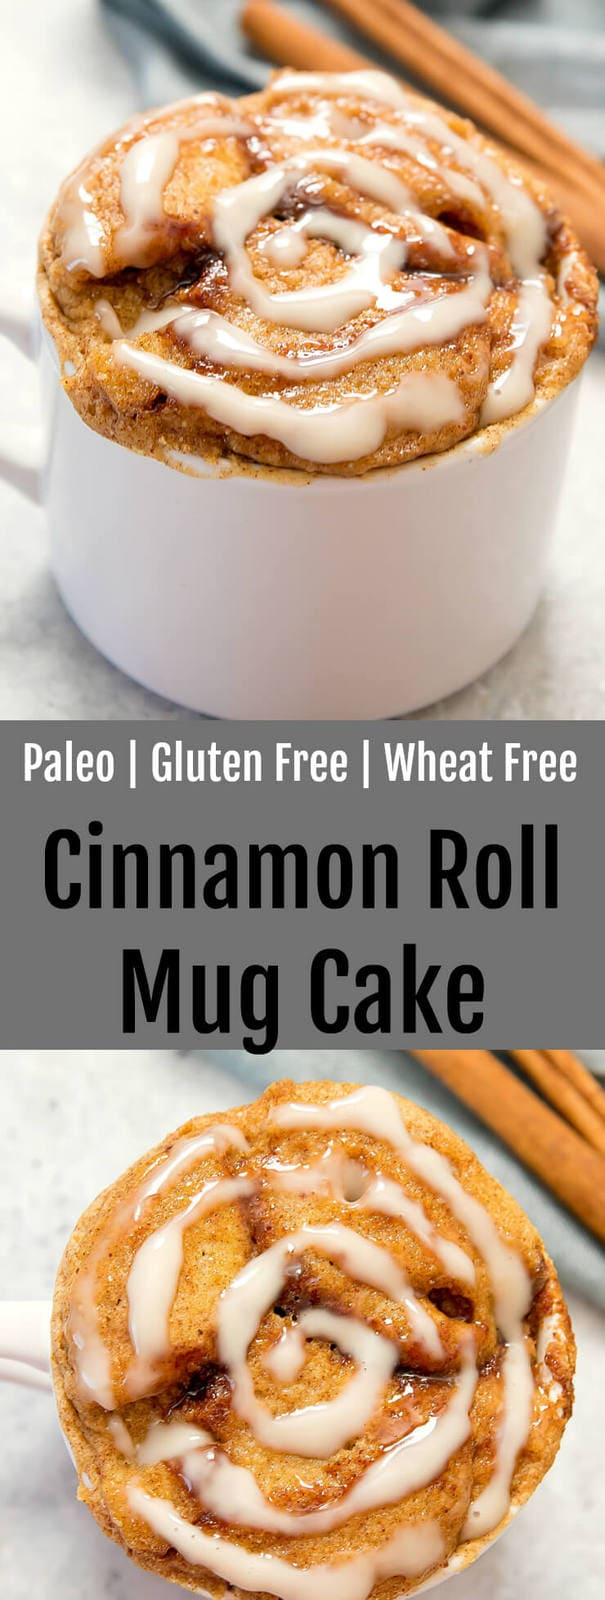 Paleo Cinnamon Roll Mug Cake. Perfect for one! This recipe cooks in the microwave and is gluten free, paleo.